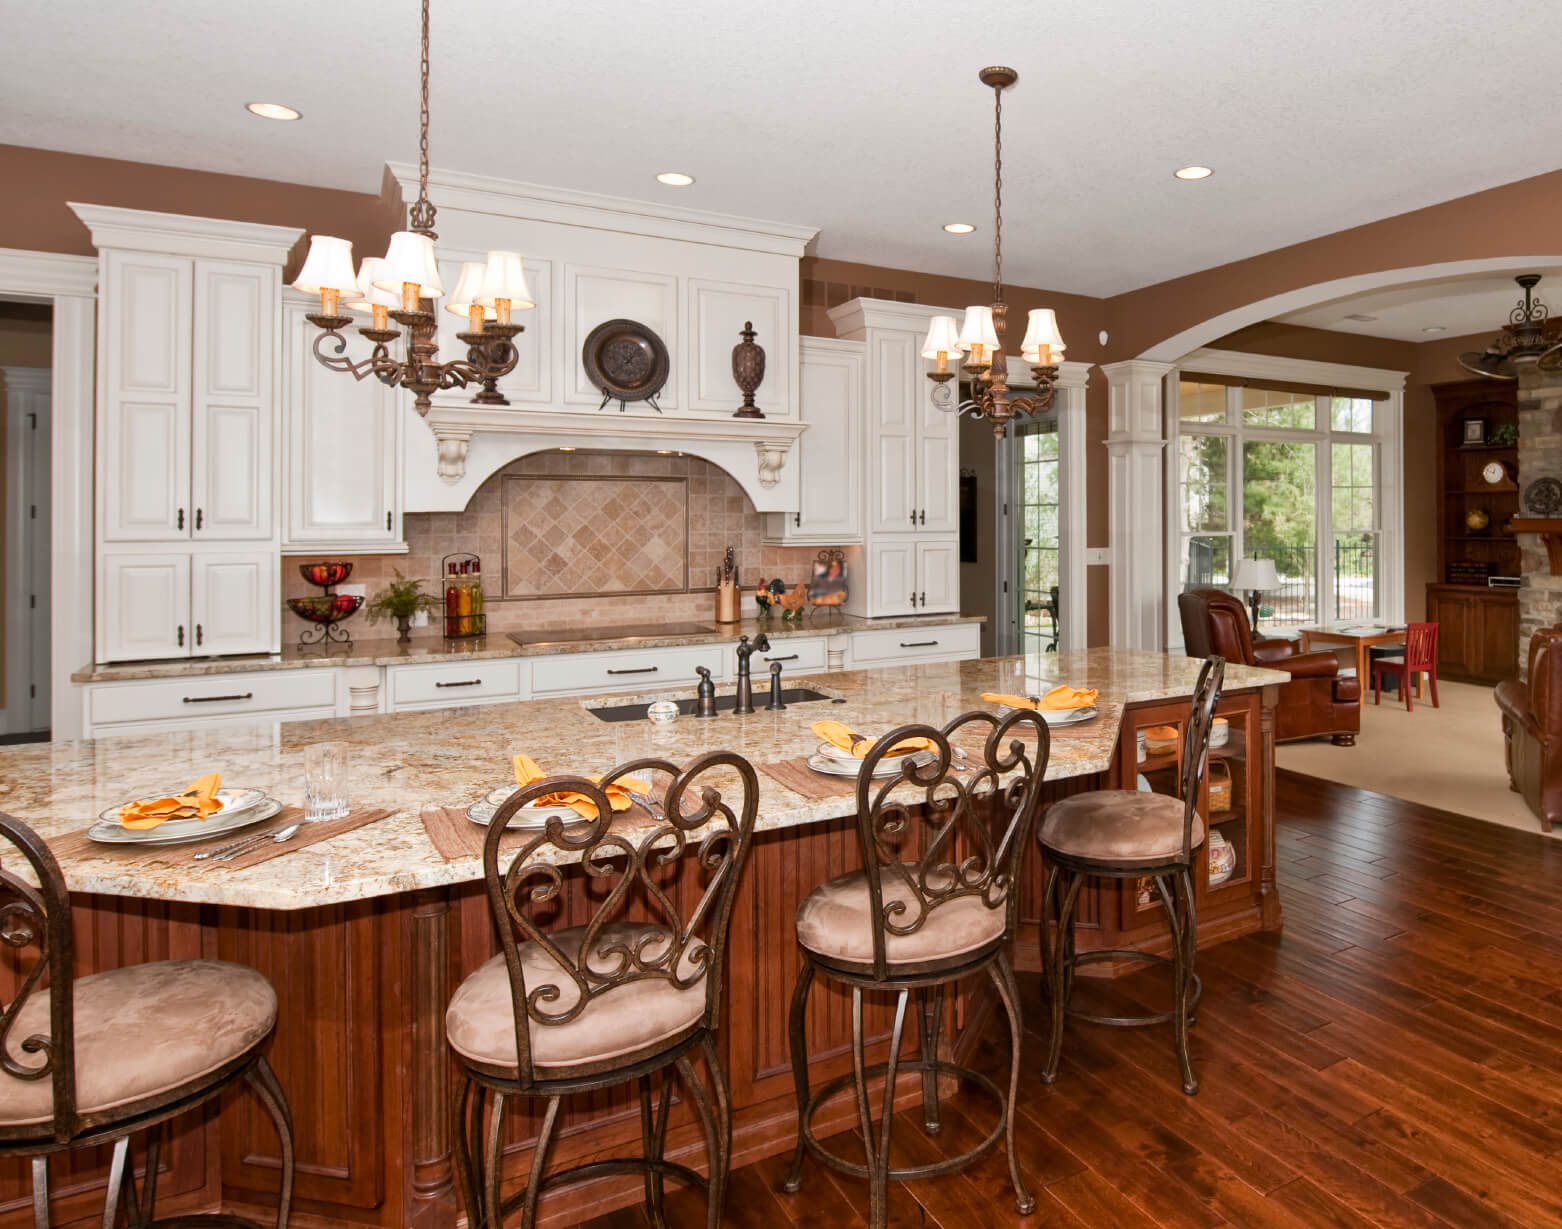 Kitchen island custom designs - Large Open Kitchen Features Immense Island Done In Natural Wood Tones With Built